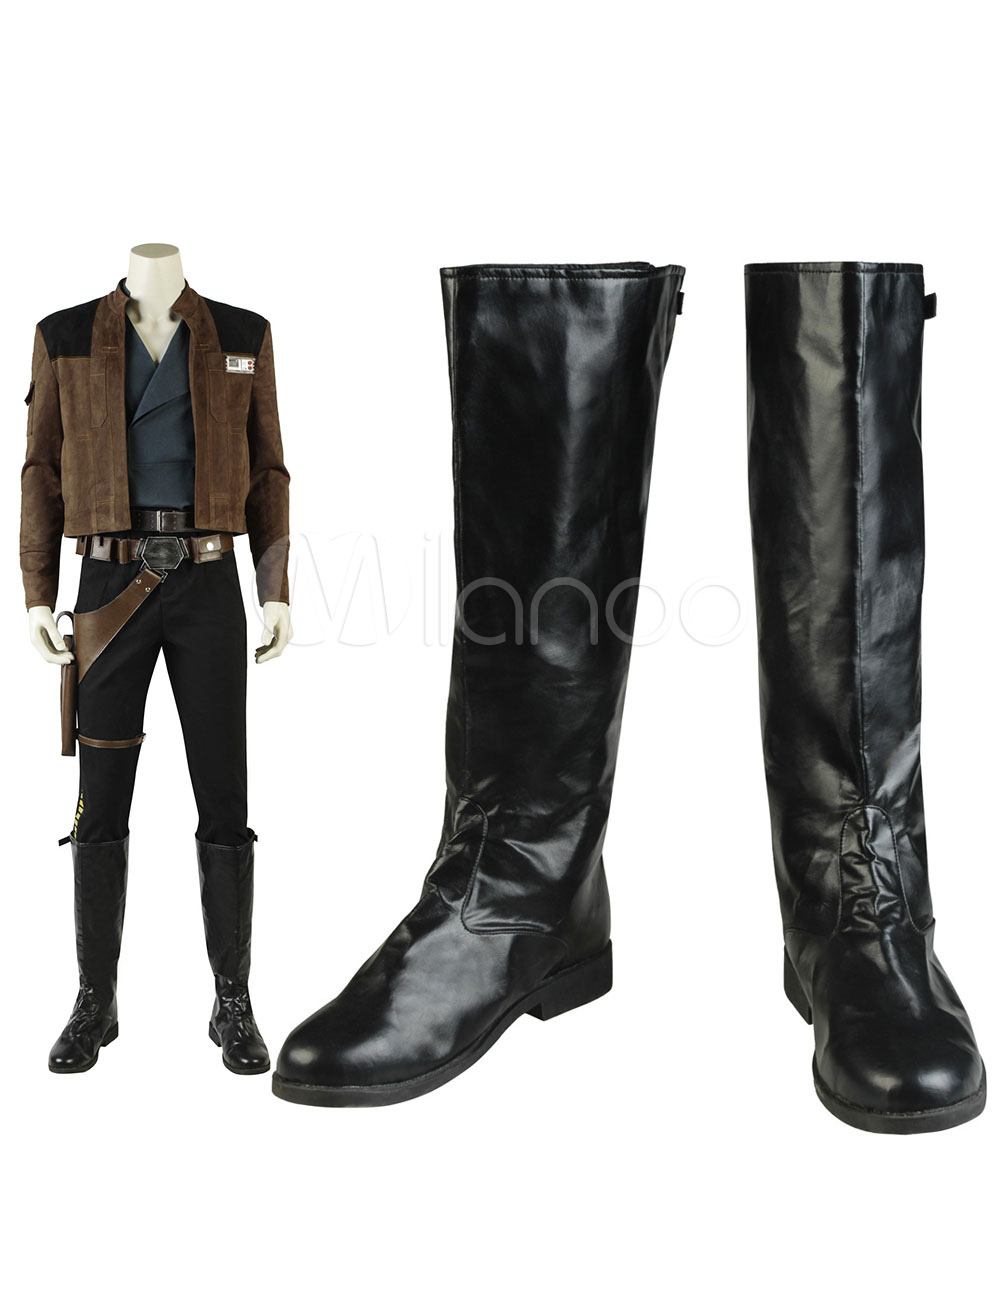 Han Solo Hot Movie Solo A Star Wars Story Cosplay Men Black Fashion Shoes Boots